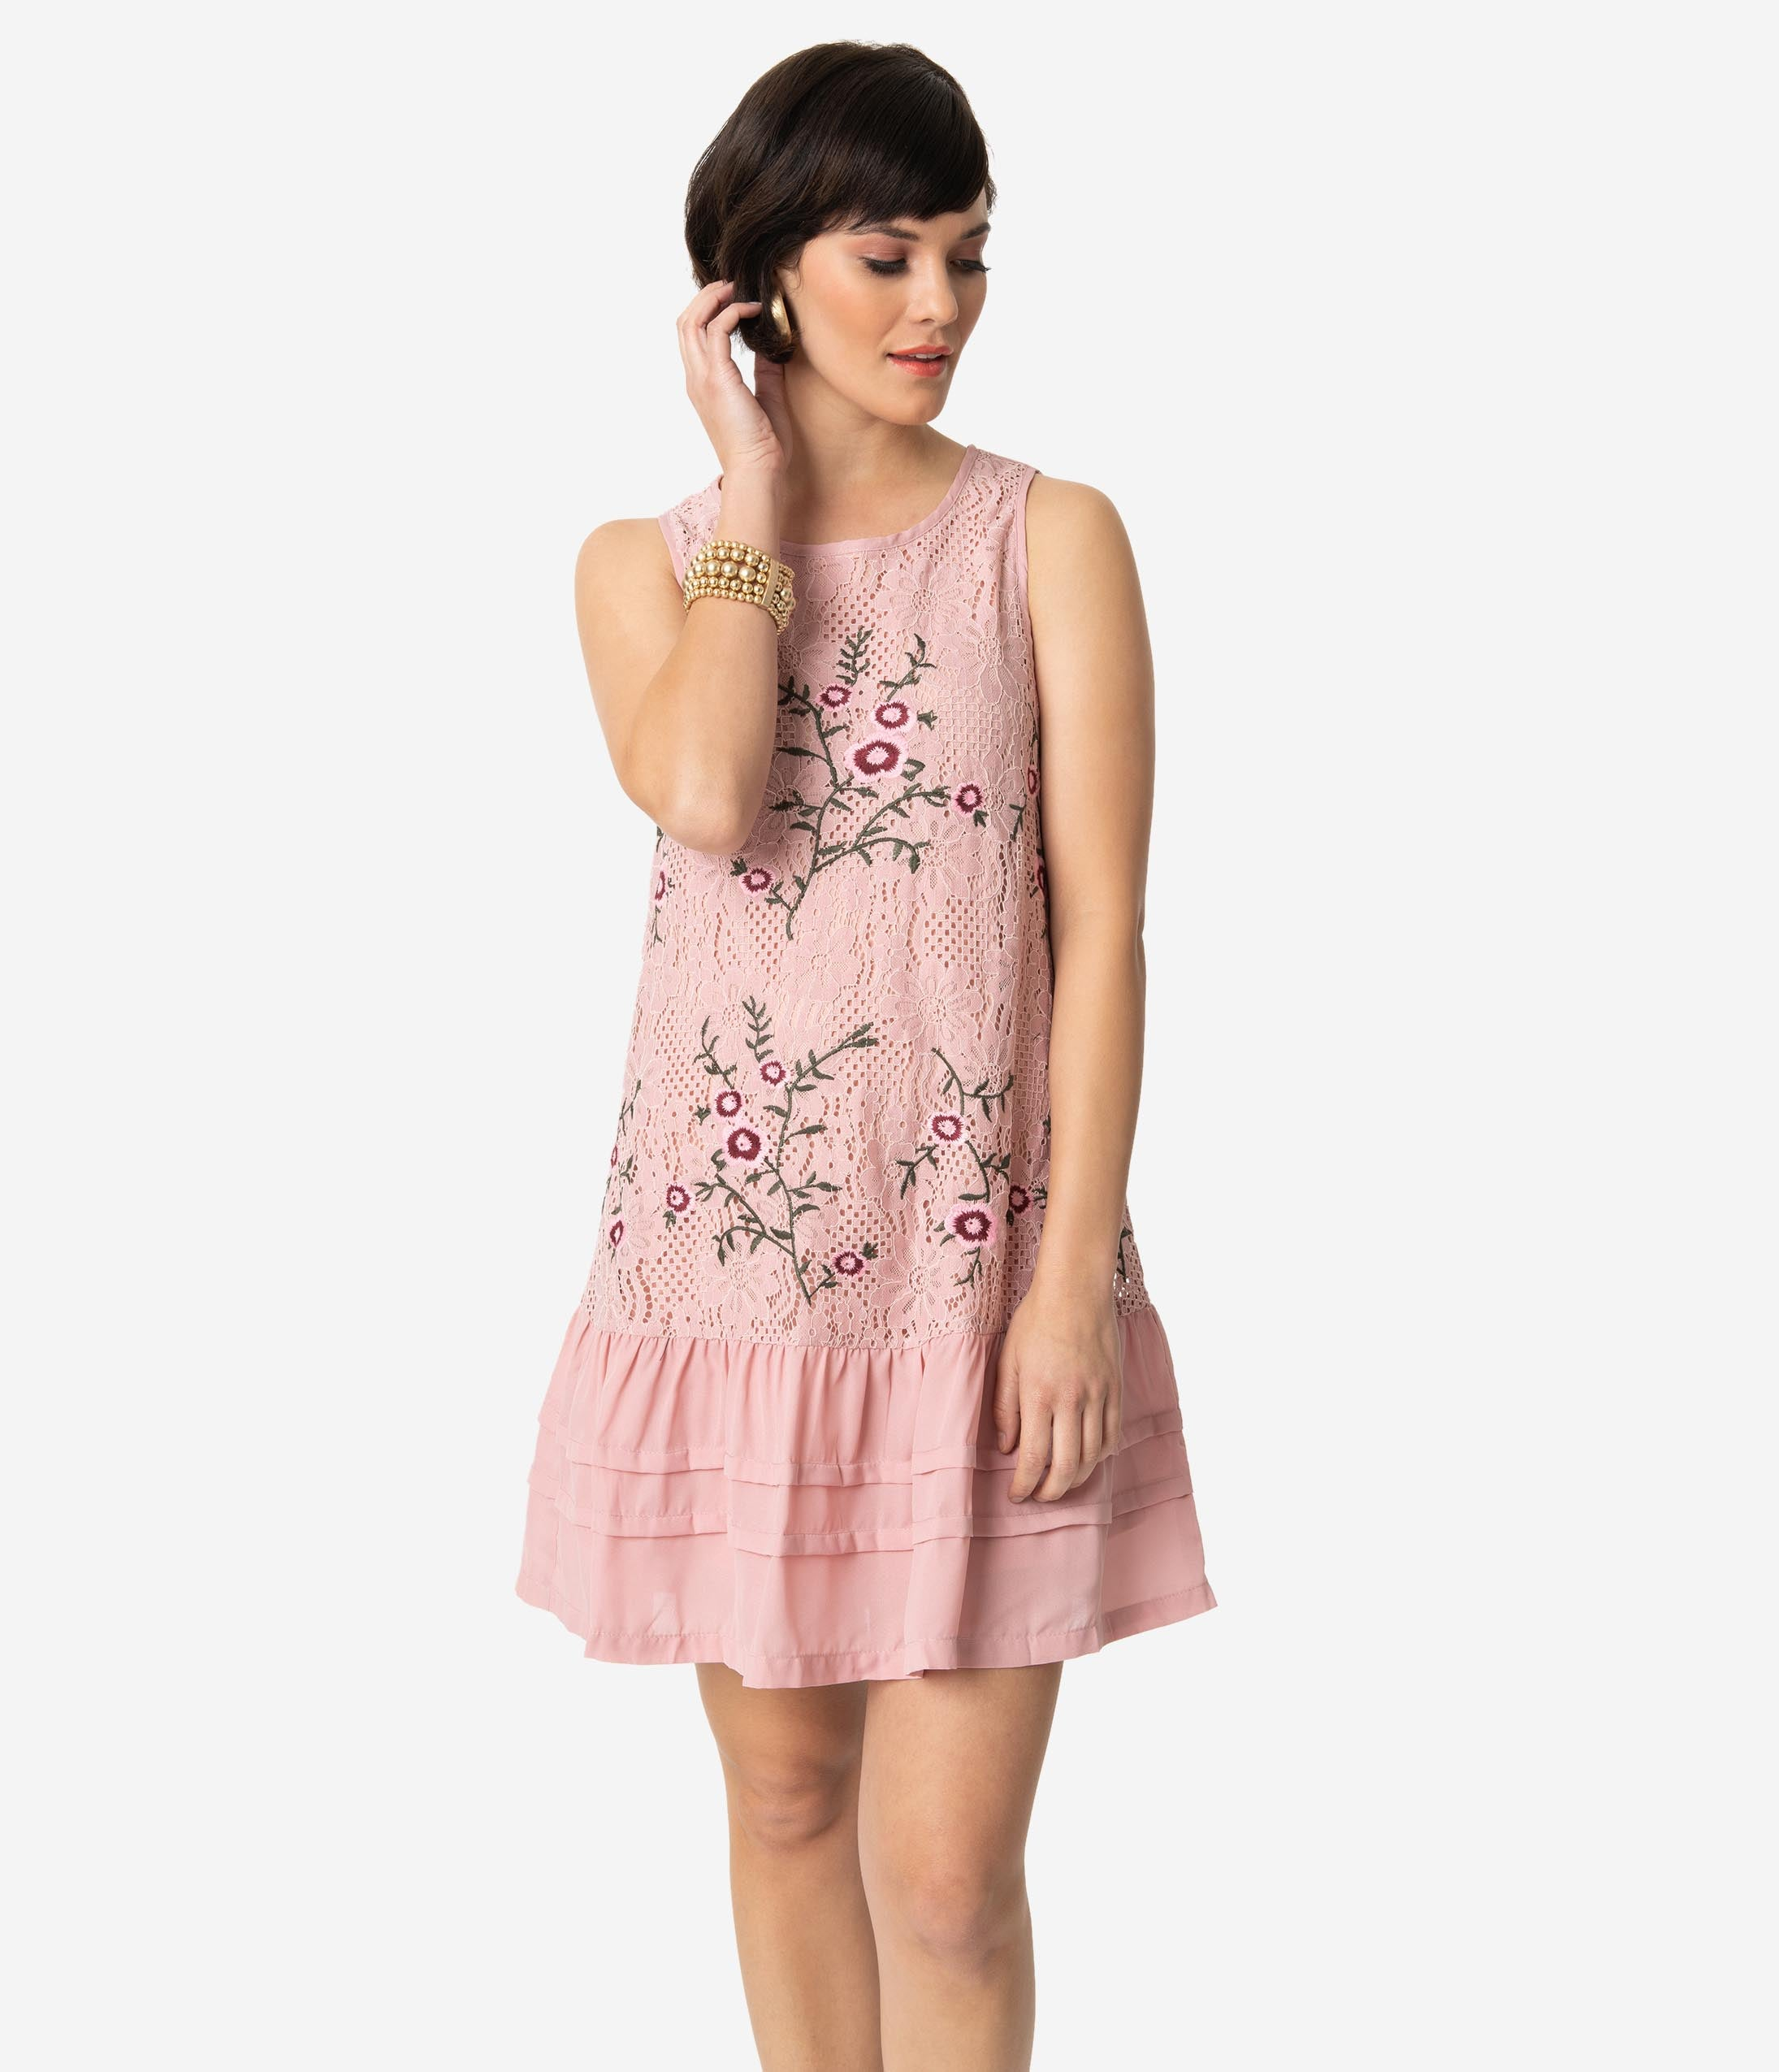 Modest, Mature, Mrs. Vintage Dresses – 20s, 30s, 40s, 50s, 60s 1920S Style Rose Pink Floral Embroidered Lace Sleeveless Drop Waist Dress $44.00 AT vintagedancer.com